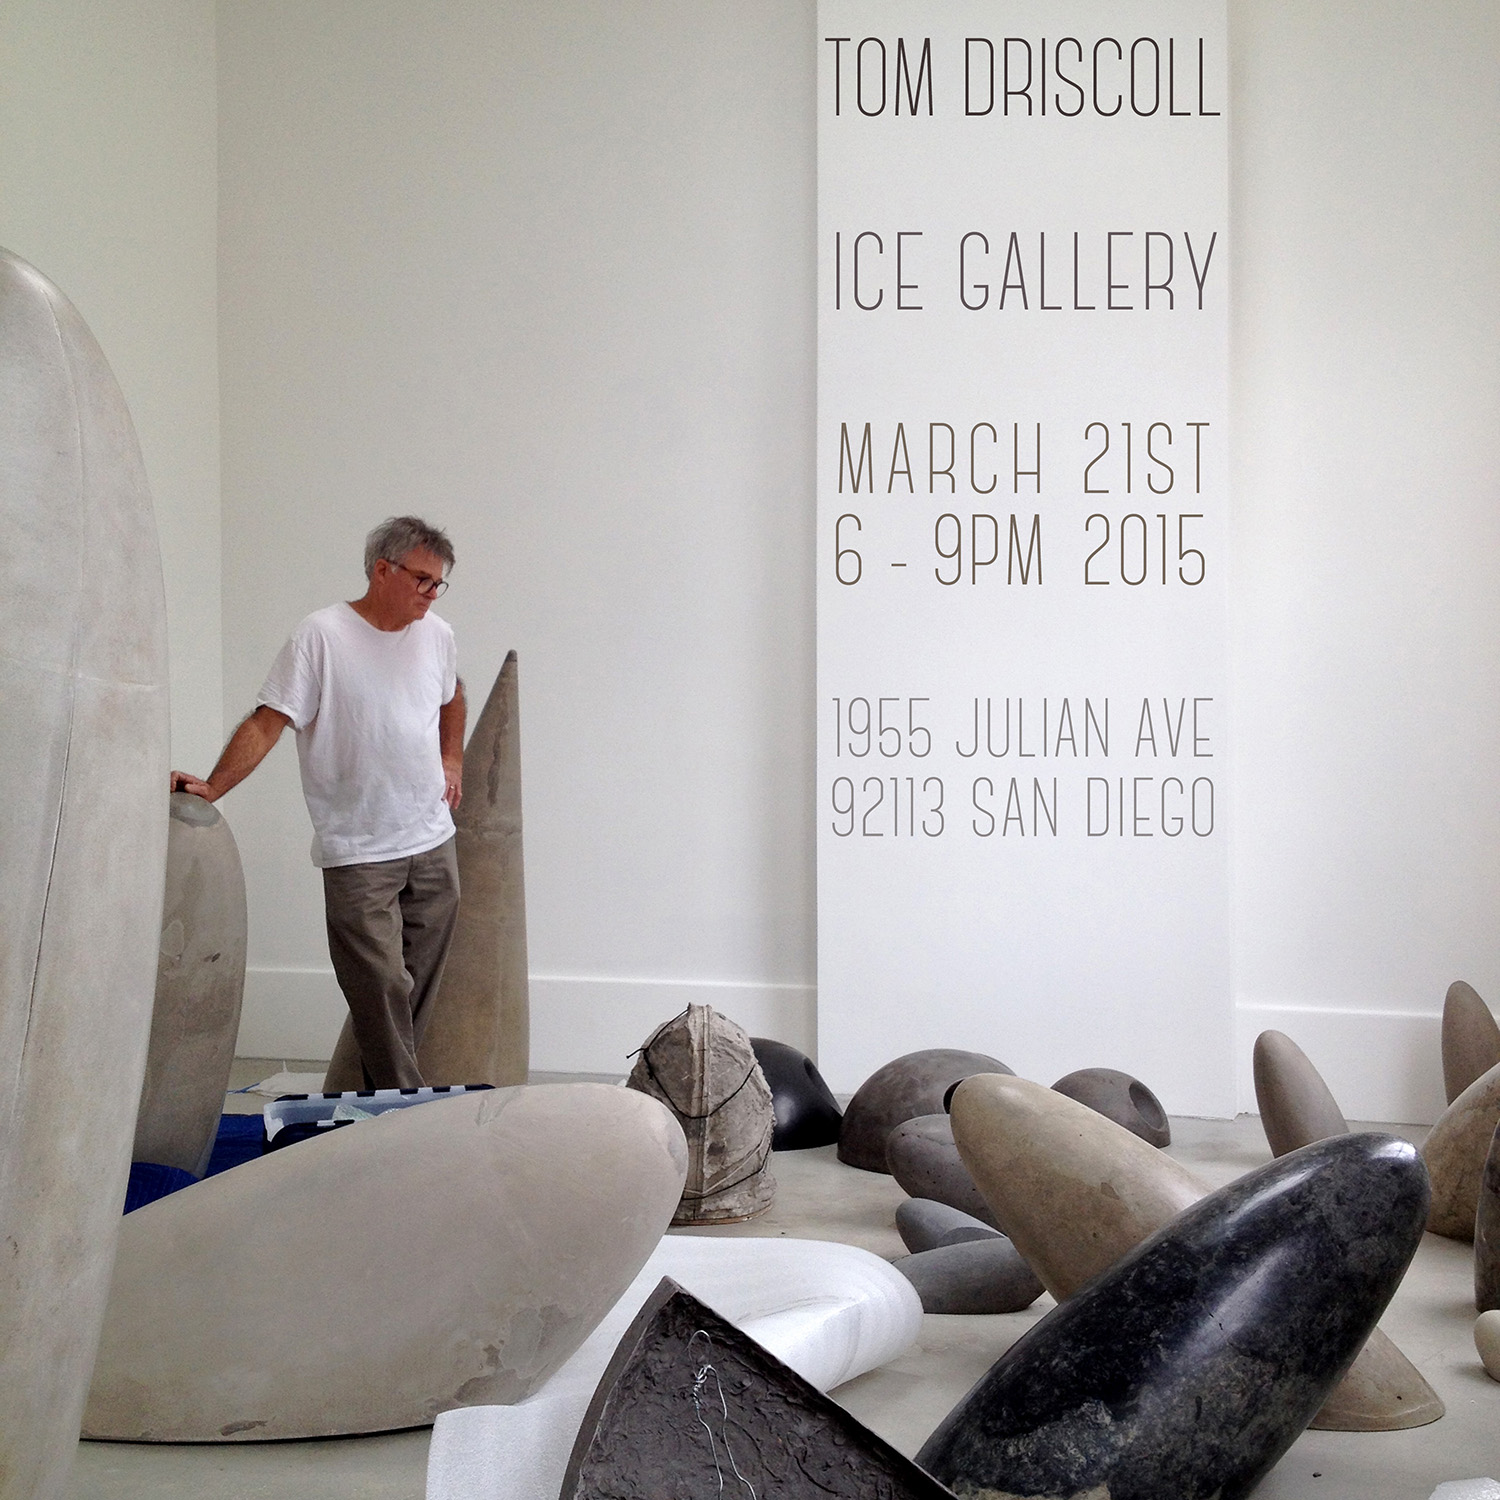 Tom Driscoll Announcement web